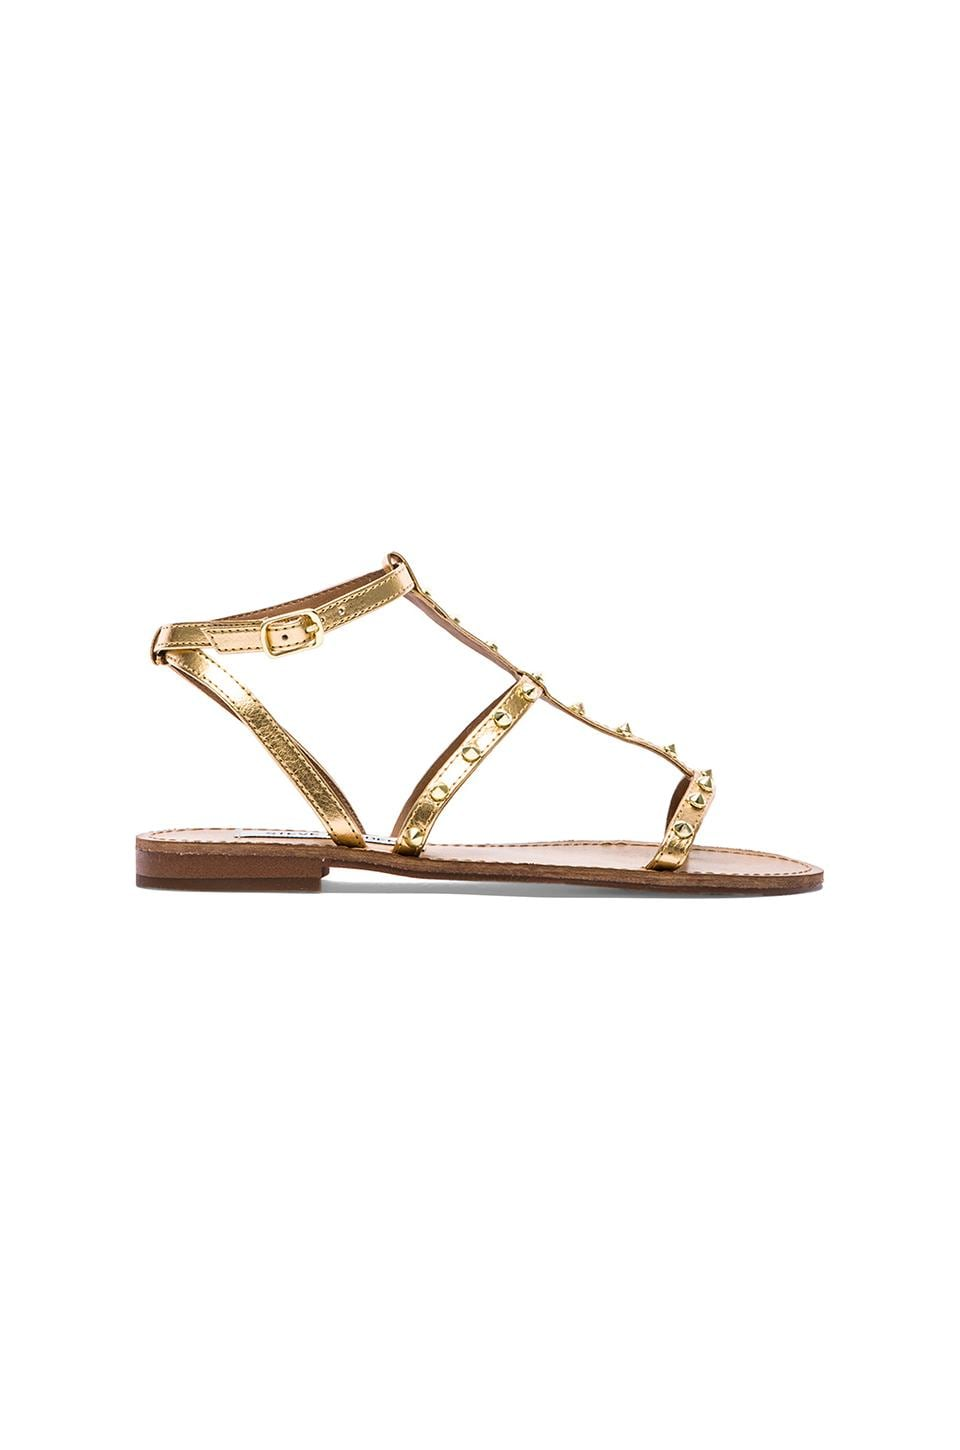 Steve Madden Greenie Sandal in Gold